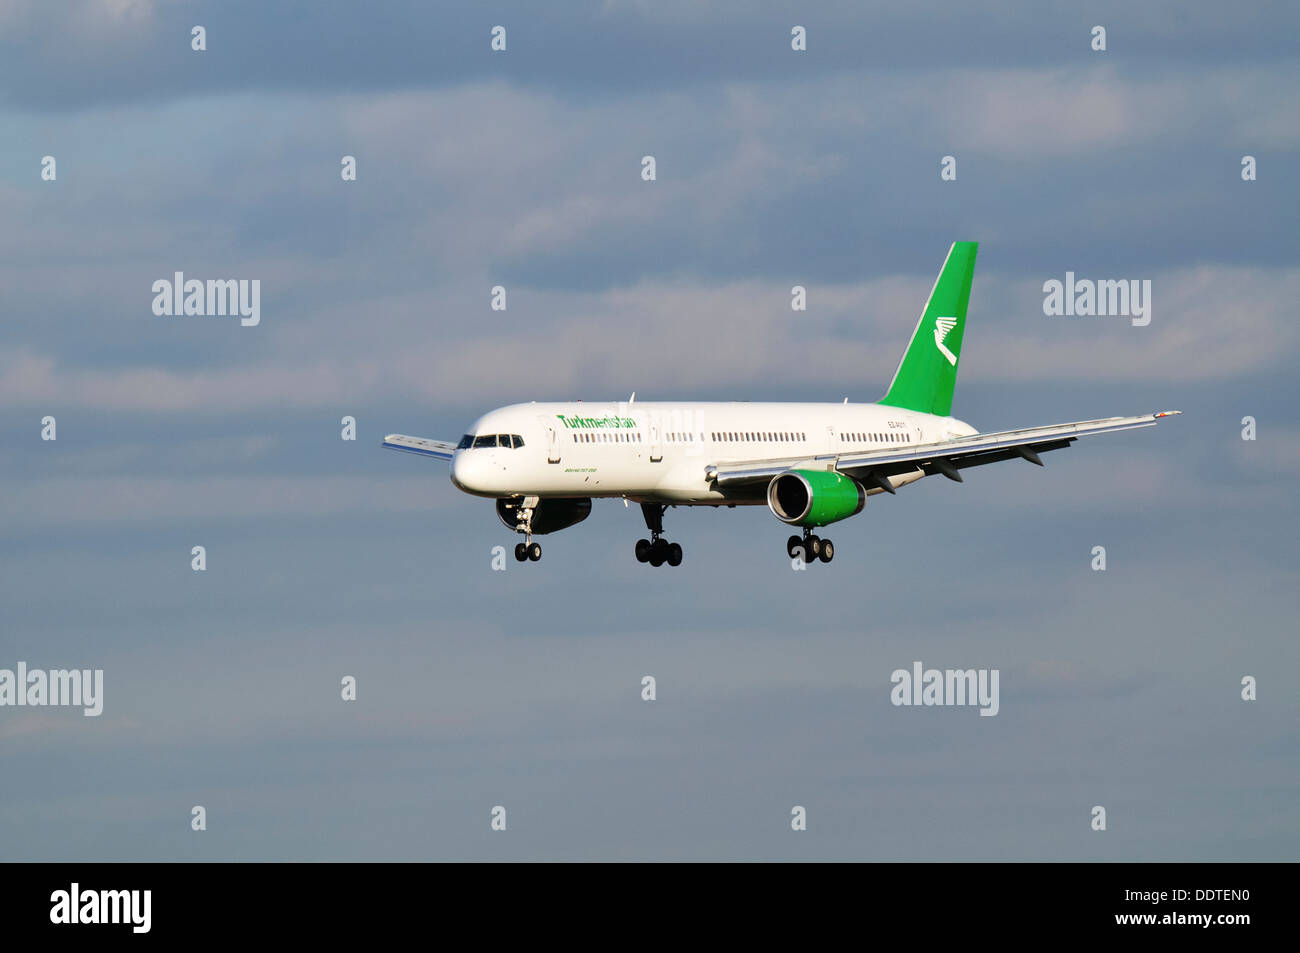 Stock Photo  Turkmenistan Airlines Boeing 757 Aircraft On Approach To Land  At Birmingham International